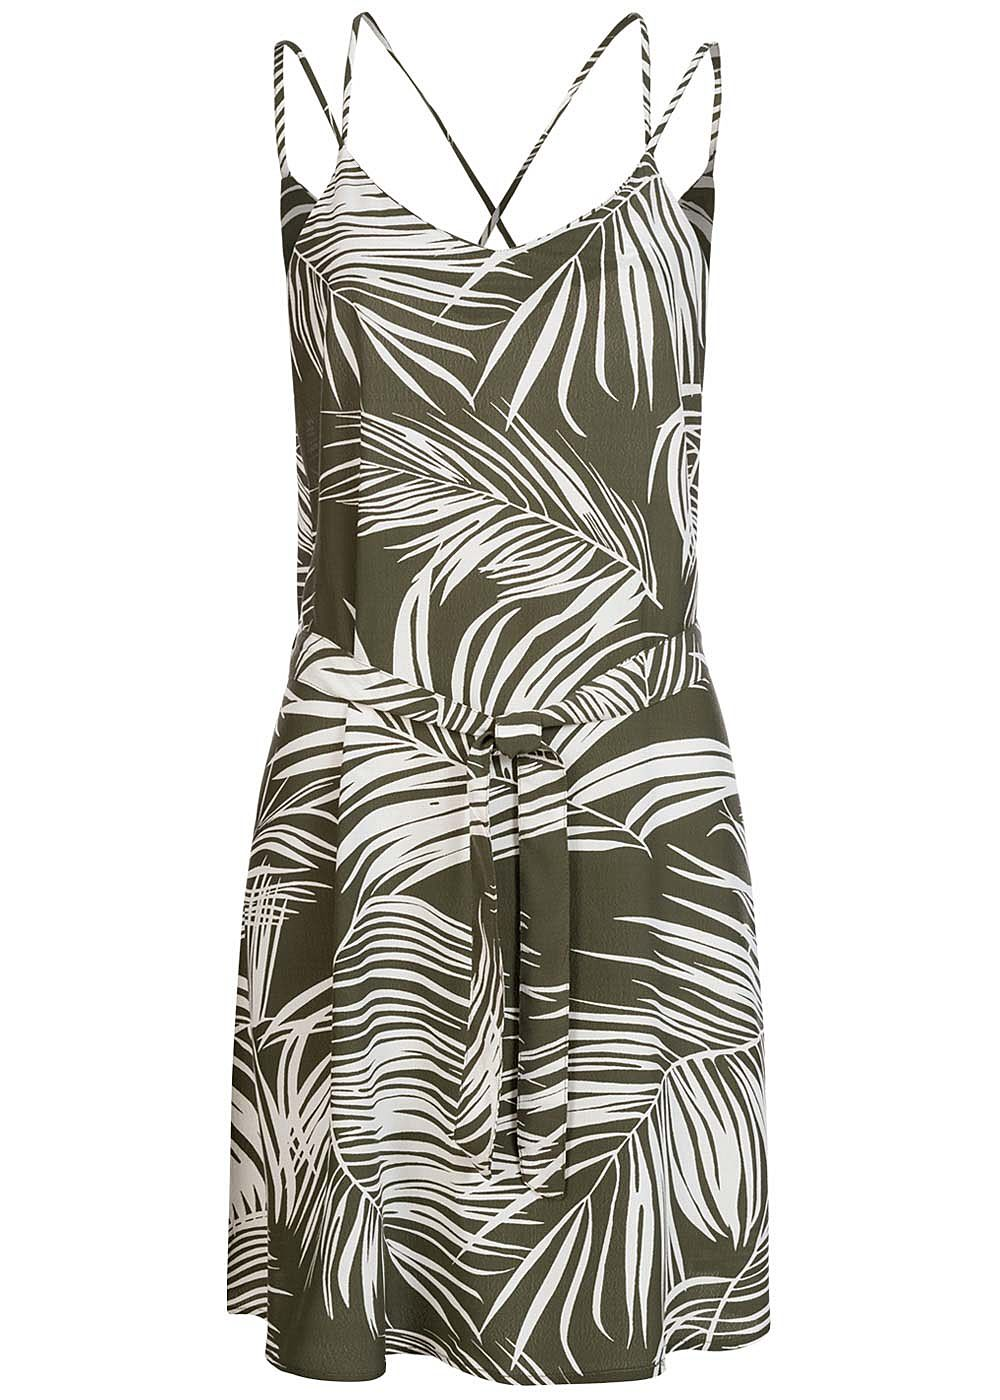 ONLY Damen V-Neck Mini Kleid inkl. Bindegürtel Tropical Print kalamata oliv grün - Art.-Nr.: 20073643